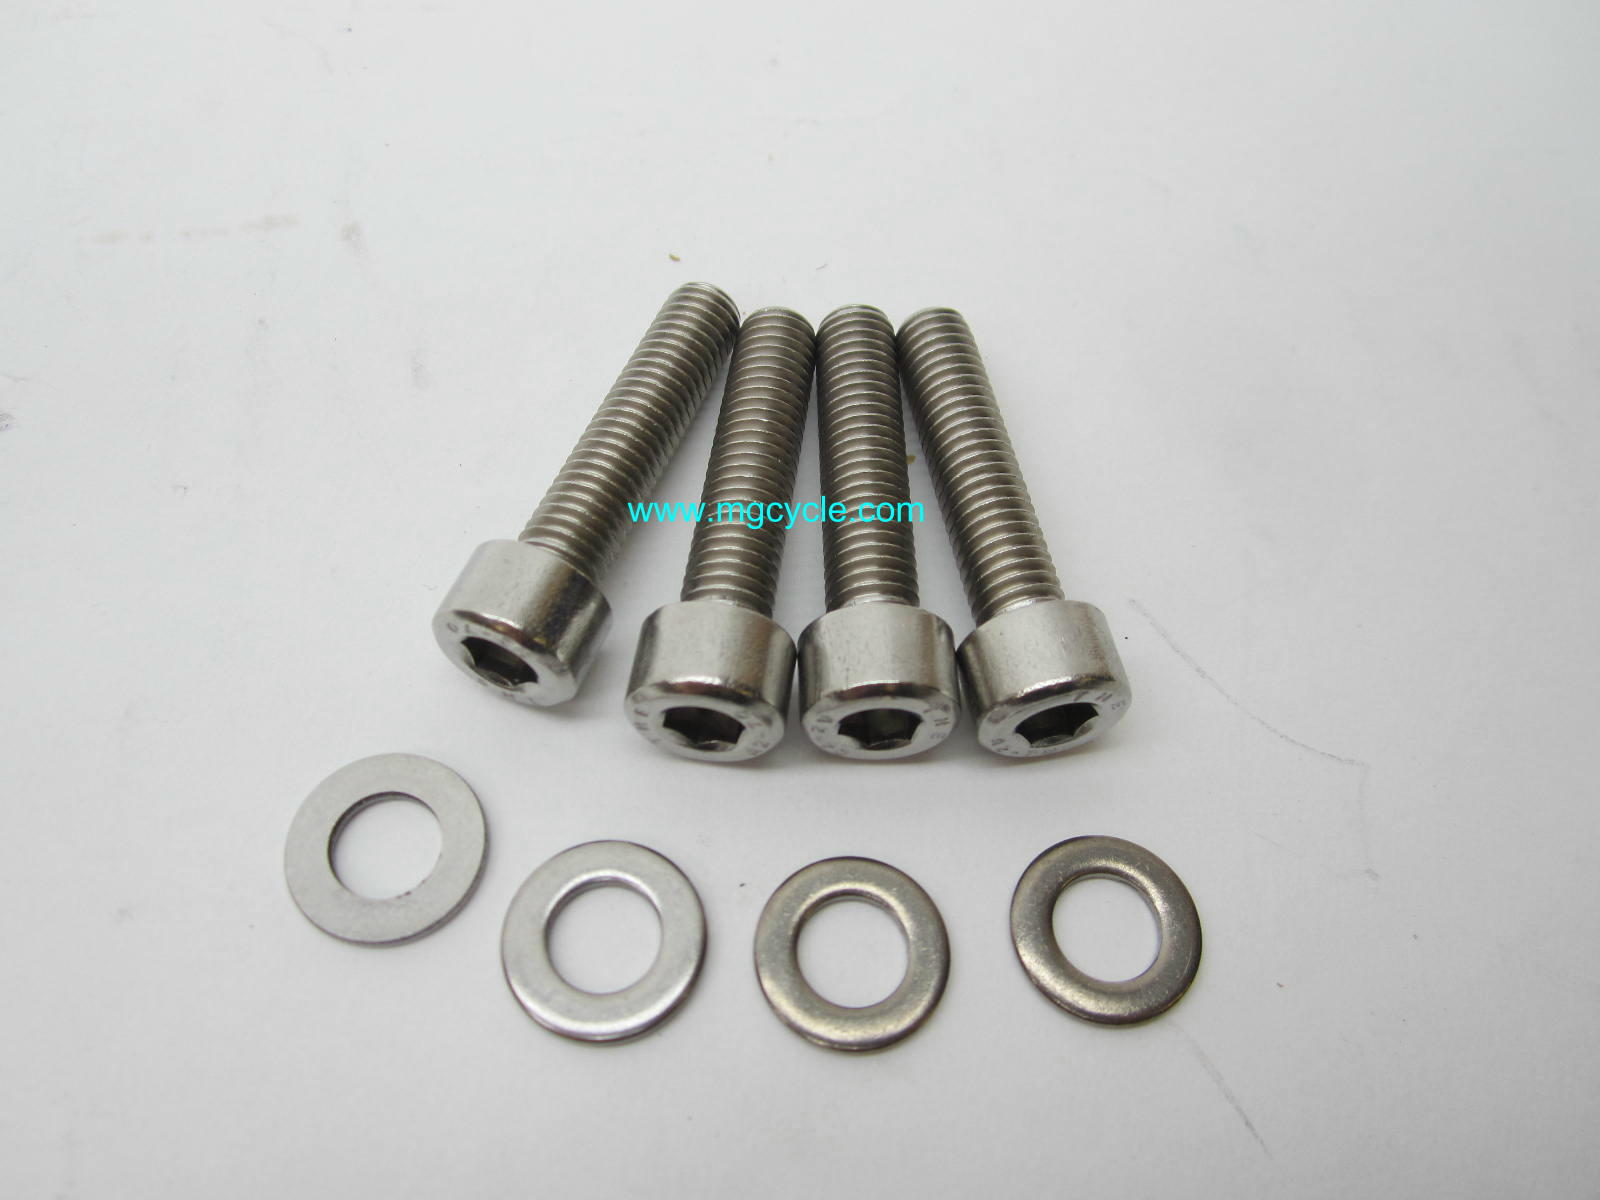 Stainless Tonti frame handlebar bar clamp bolts